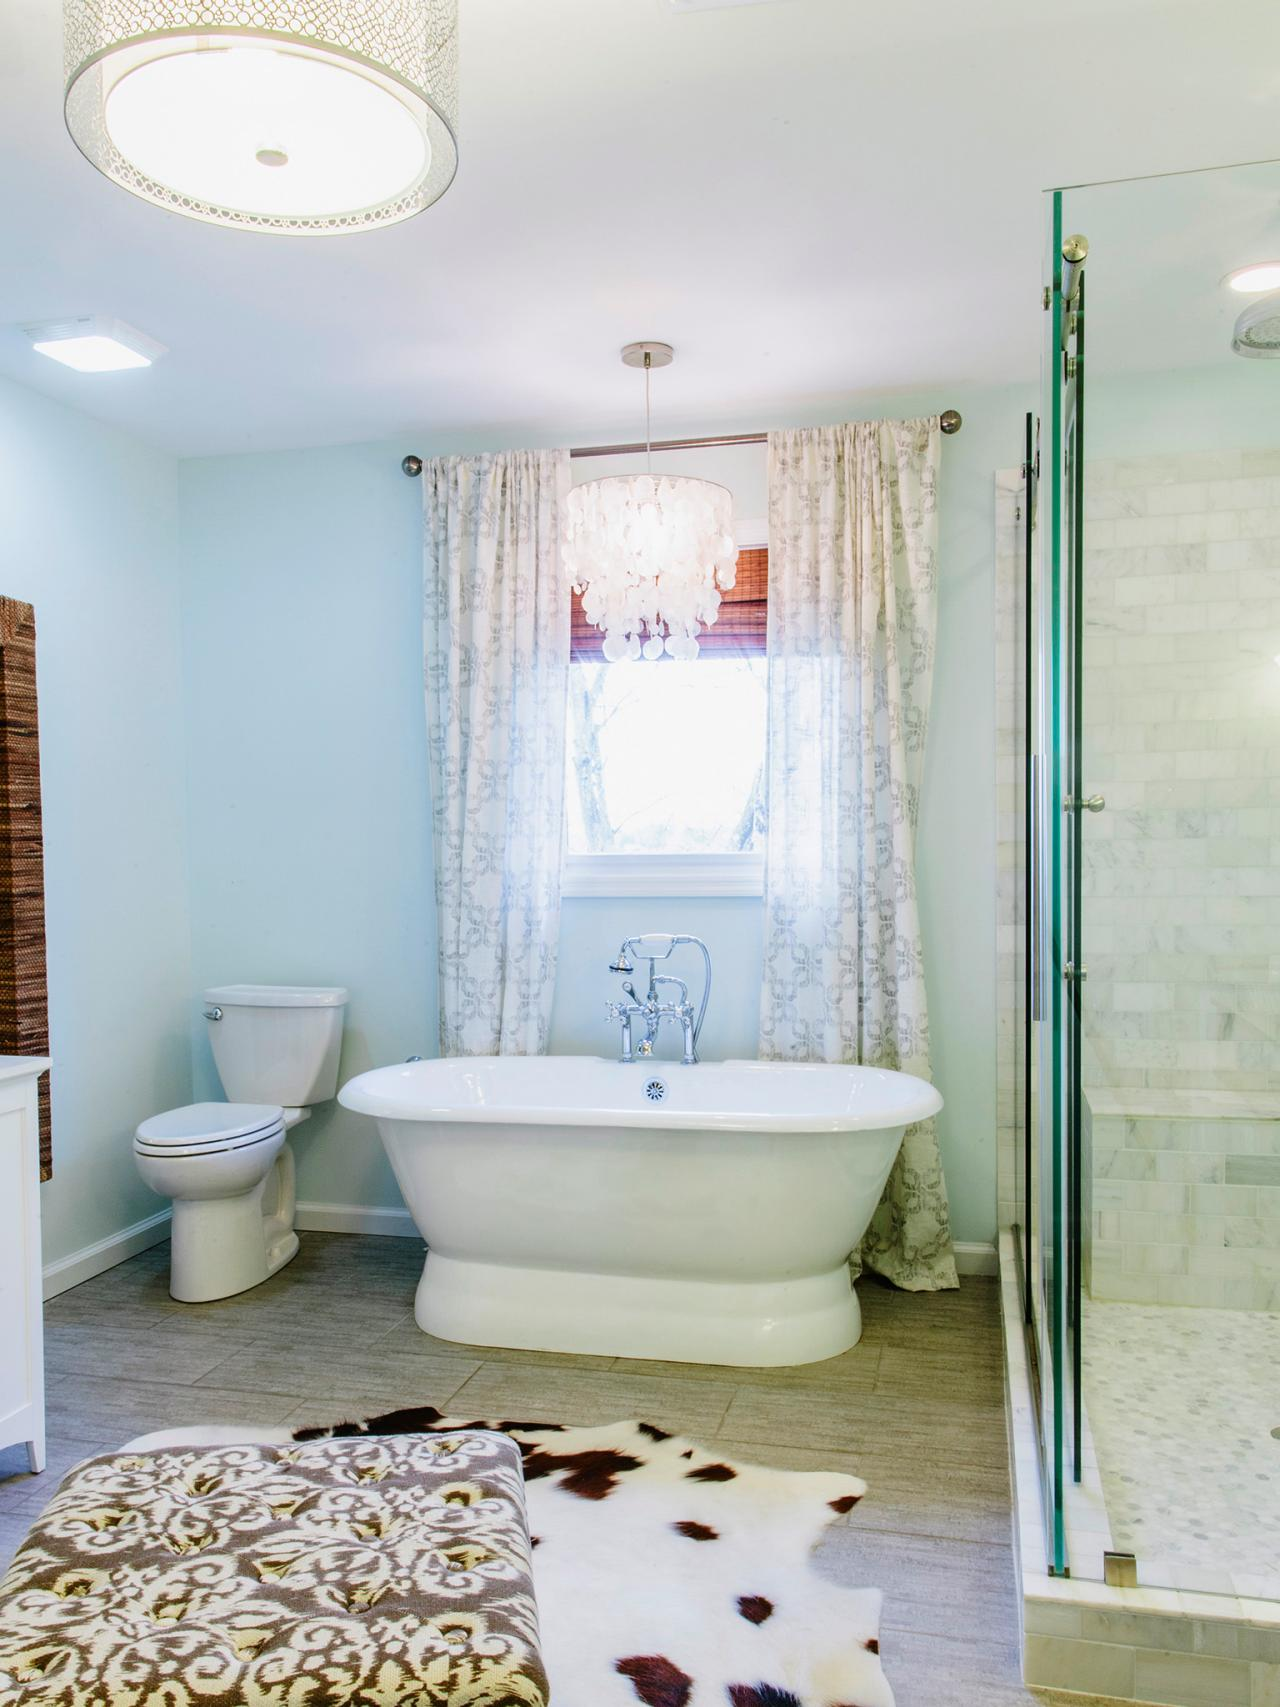 Delicate Window Bathroom Curtain Ideas also White Bathtub near Toilet